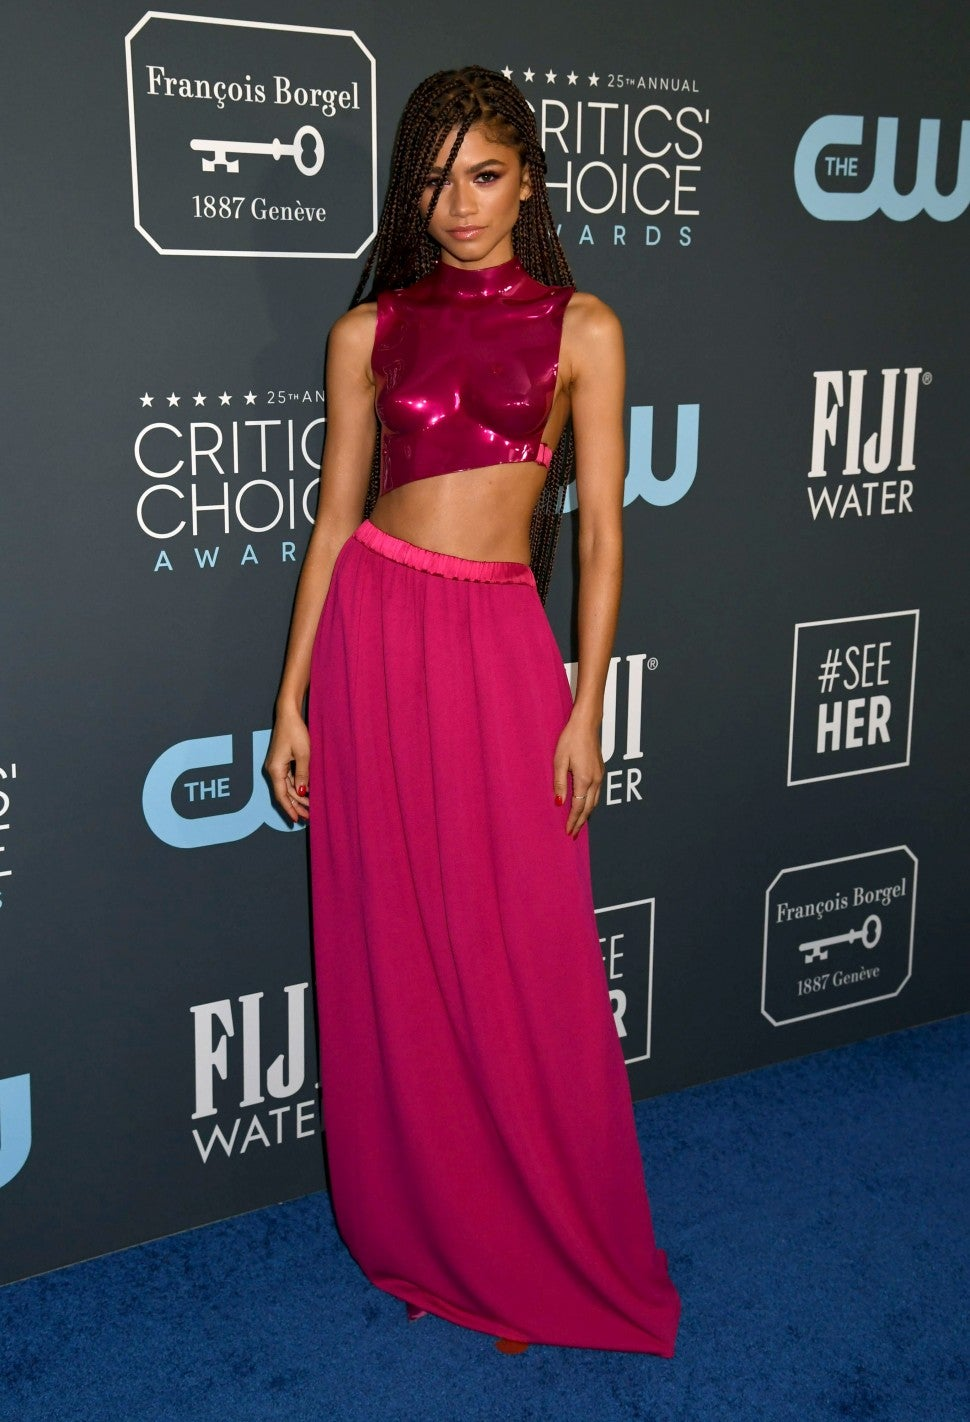 Zendaya critics choice awards pink outfit